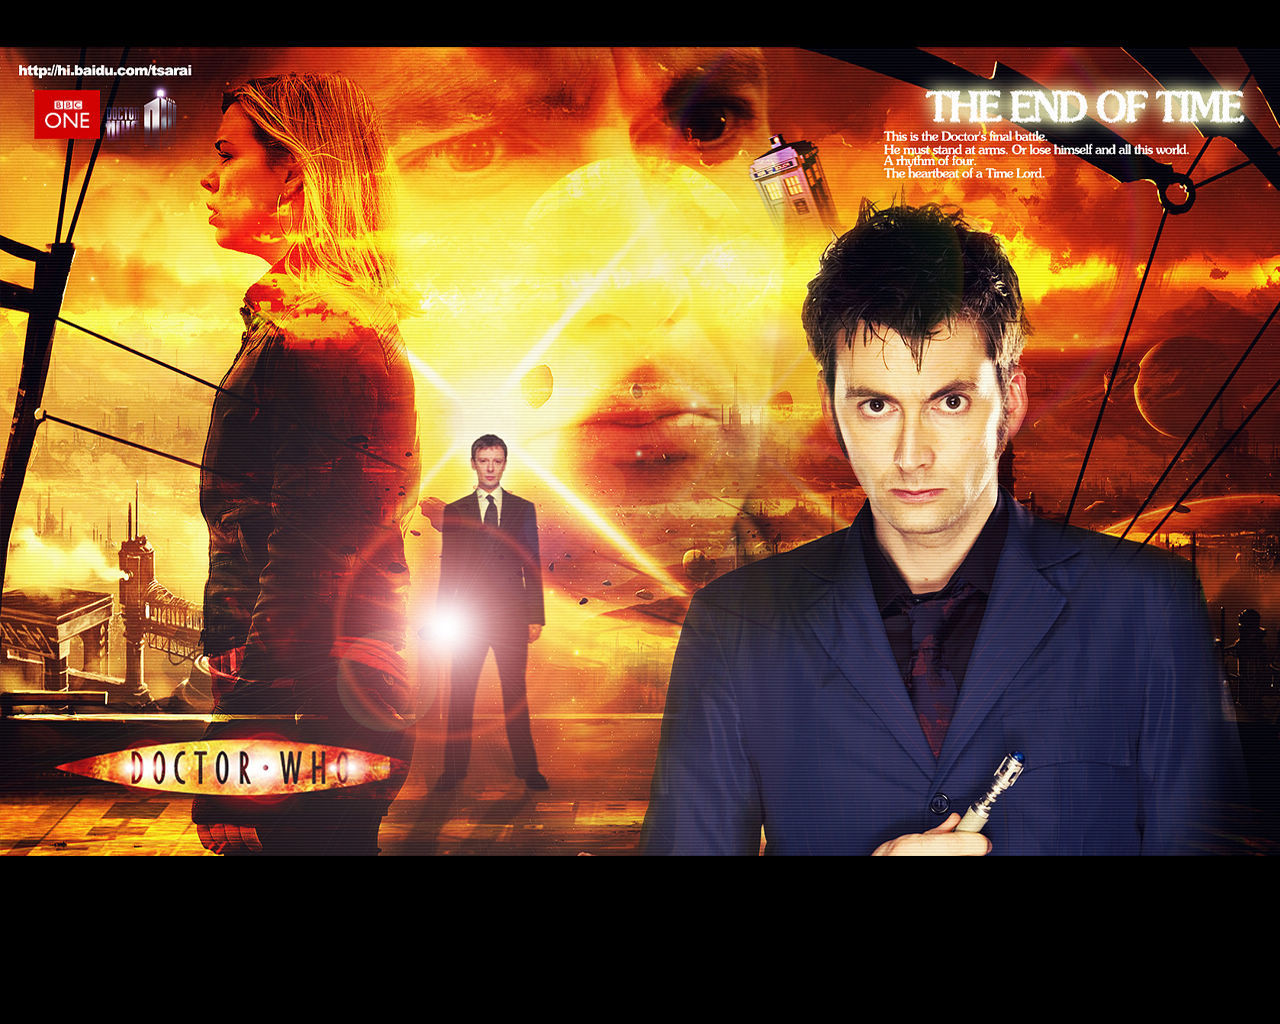 Doctor Who David Tennant Wallpaper 9642639 Fanpop